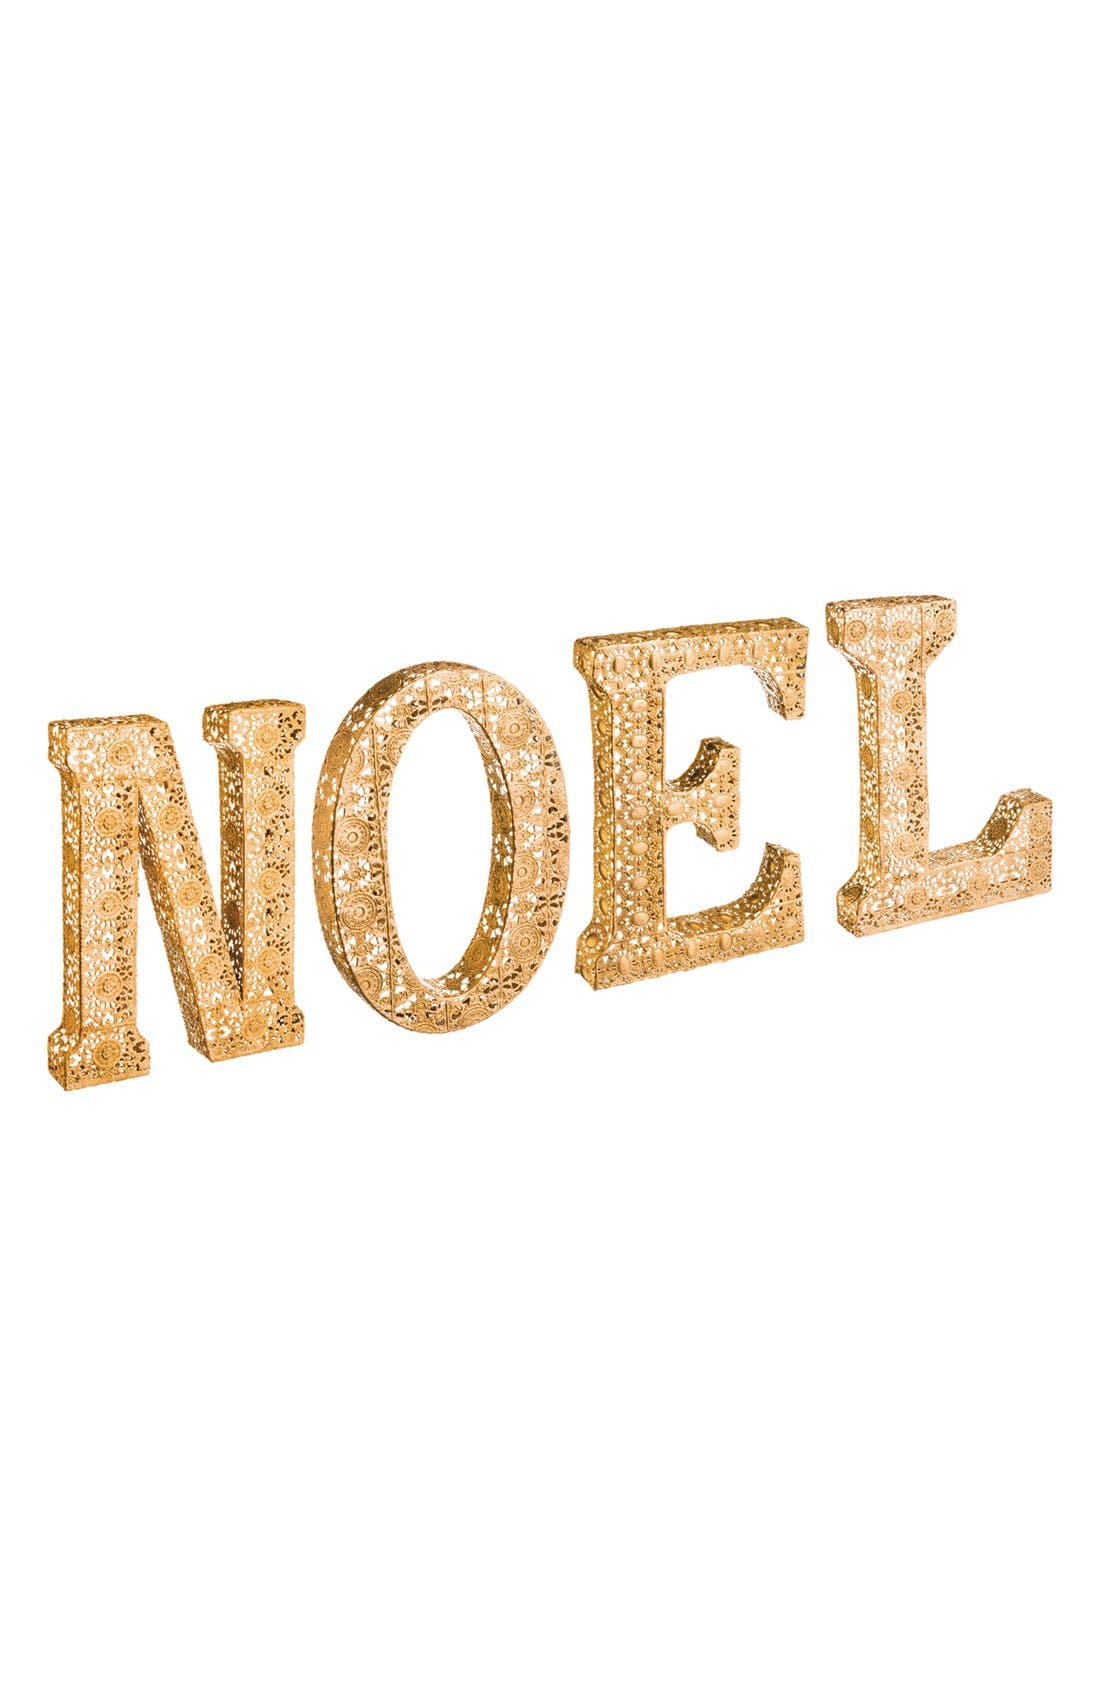 Alternate Image 1 Selected - ALLSTATE 'Noel' Wall Art